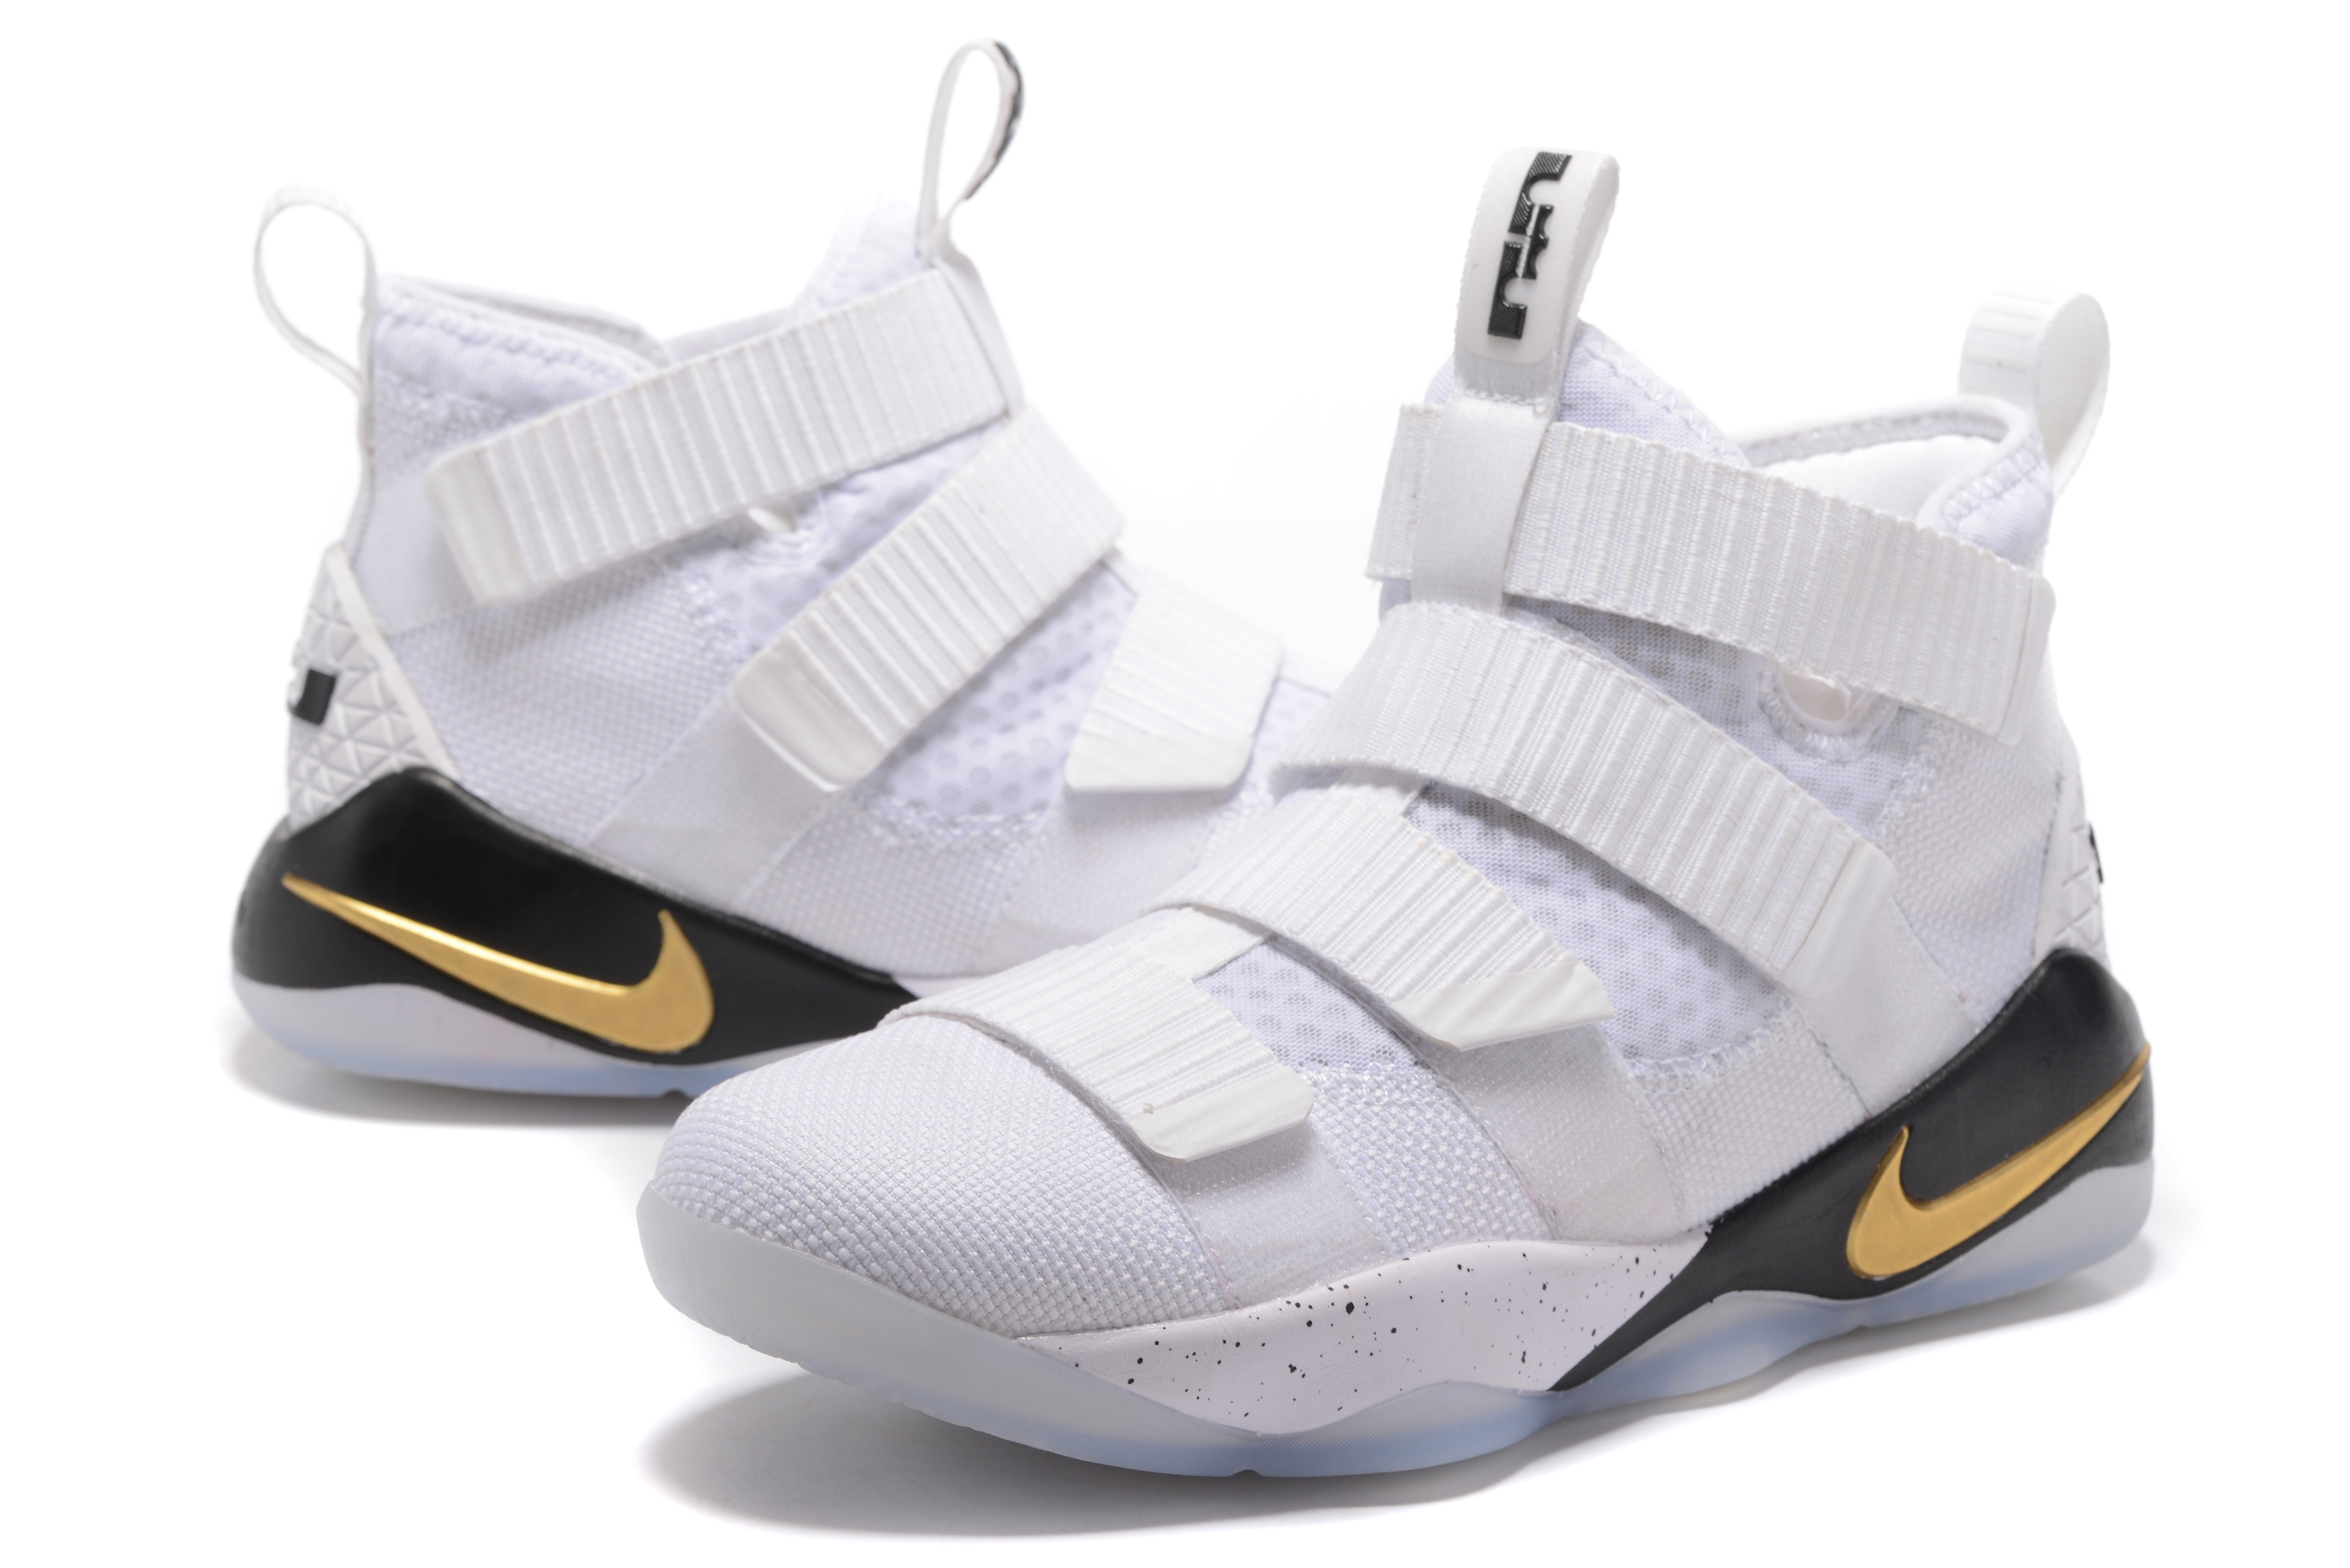 Nike Lebron Solider 11 White Gloden Basktabll Shoes